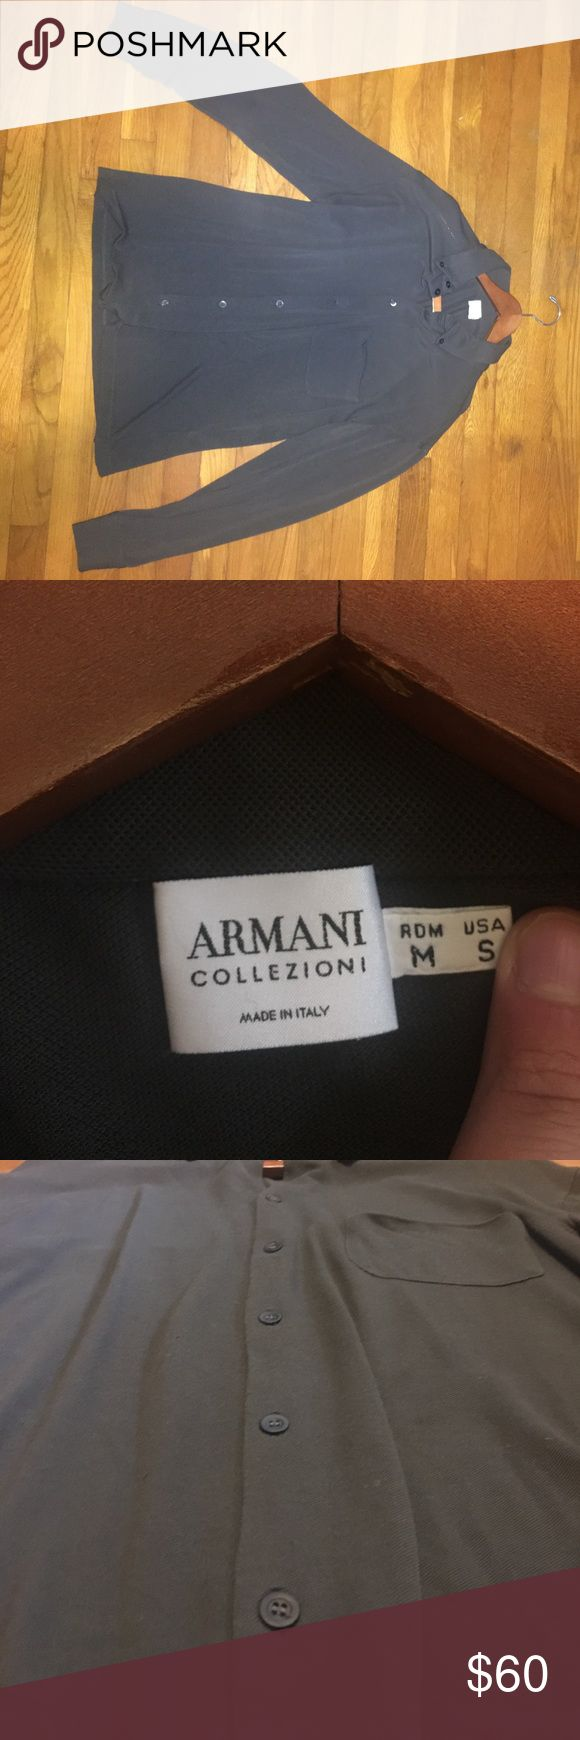 Armani Collezioni long sleeve sweater/dress shirt US size S Armani Collezioni dress shirt sweater. Bought it and only wore it a few times. No stains, tears, or rips.  Pet free, smoke free home. Very unique shirt because it has a dress shirt style with a sweater material. Very comfortable for any season! Price negotiable. Armani Collezioni Shirts Casual Button Down Shirts